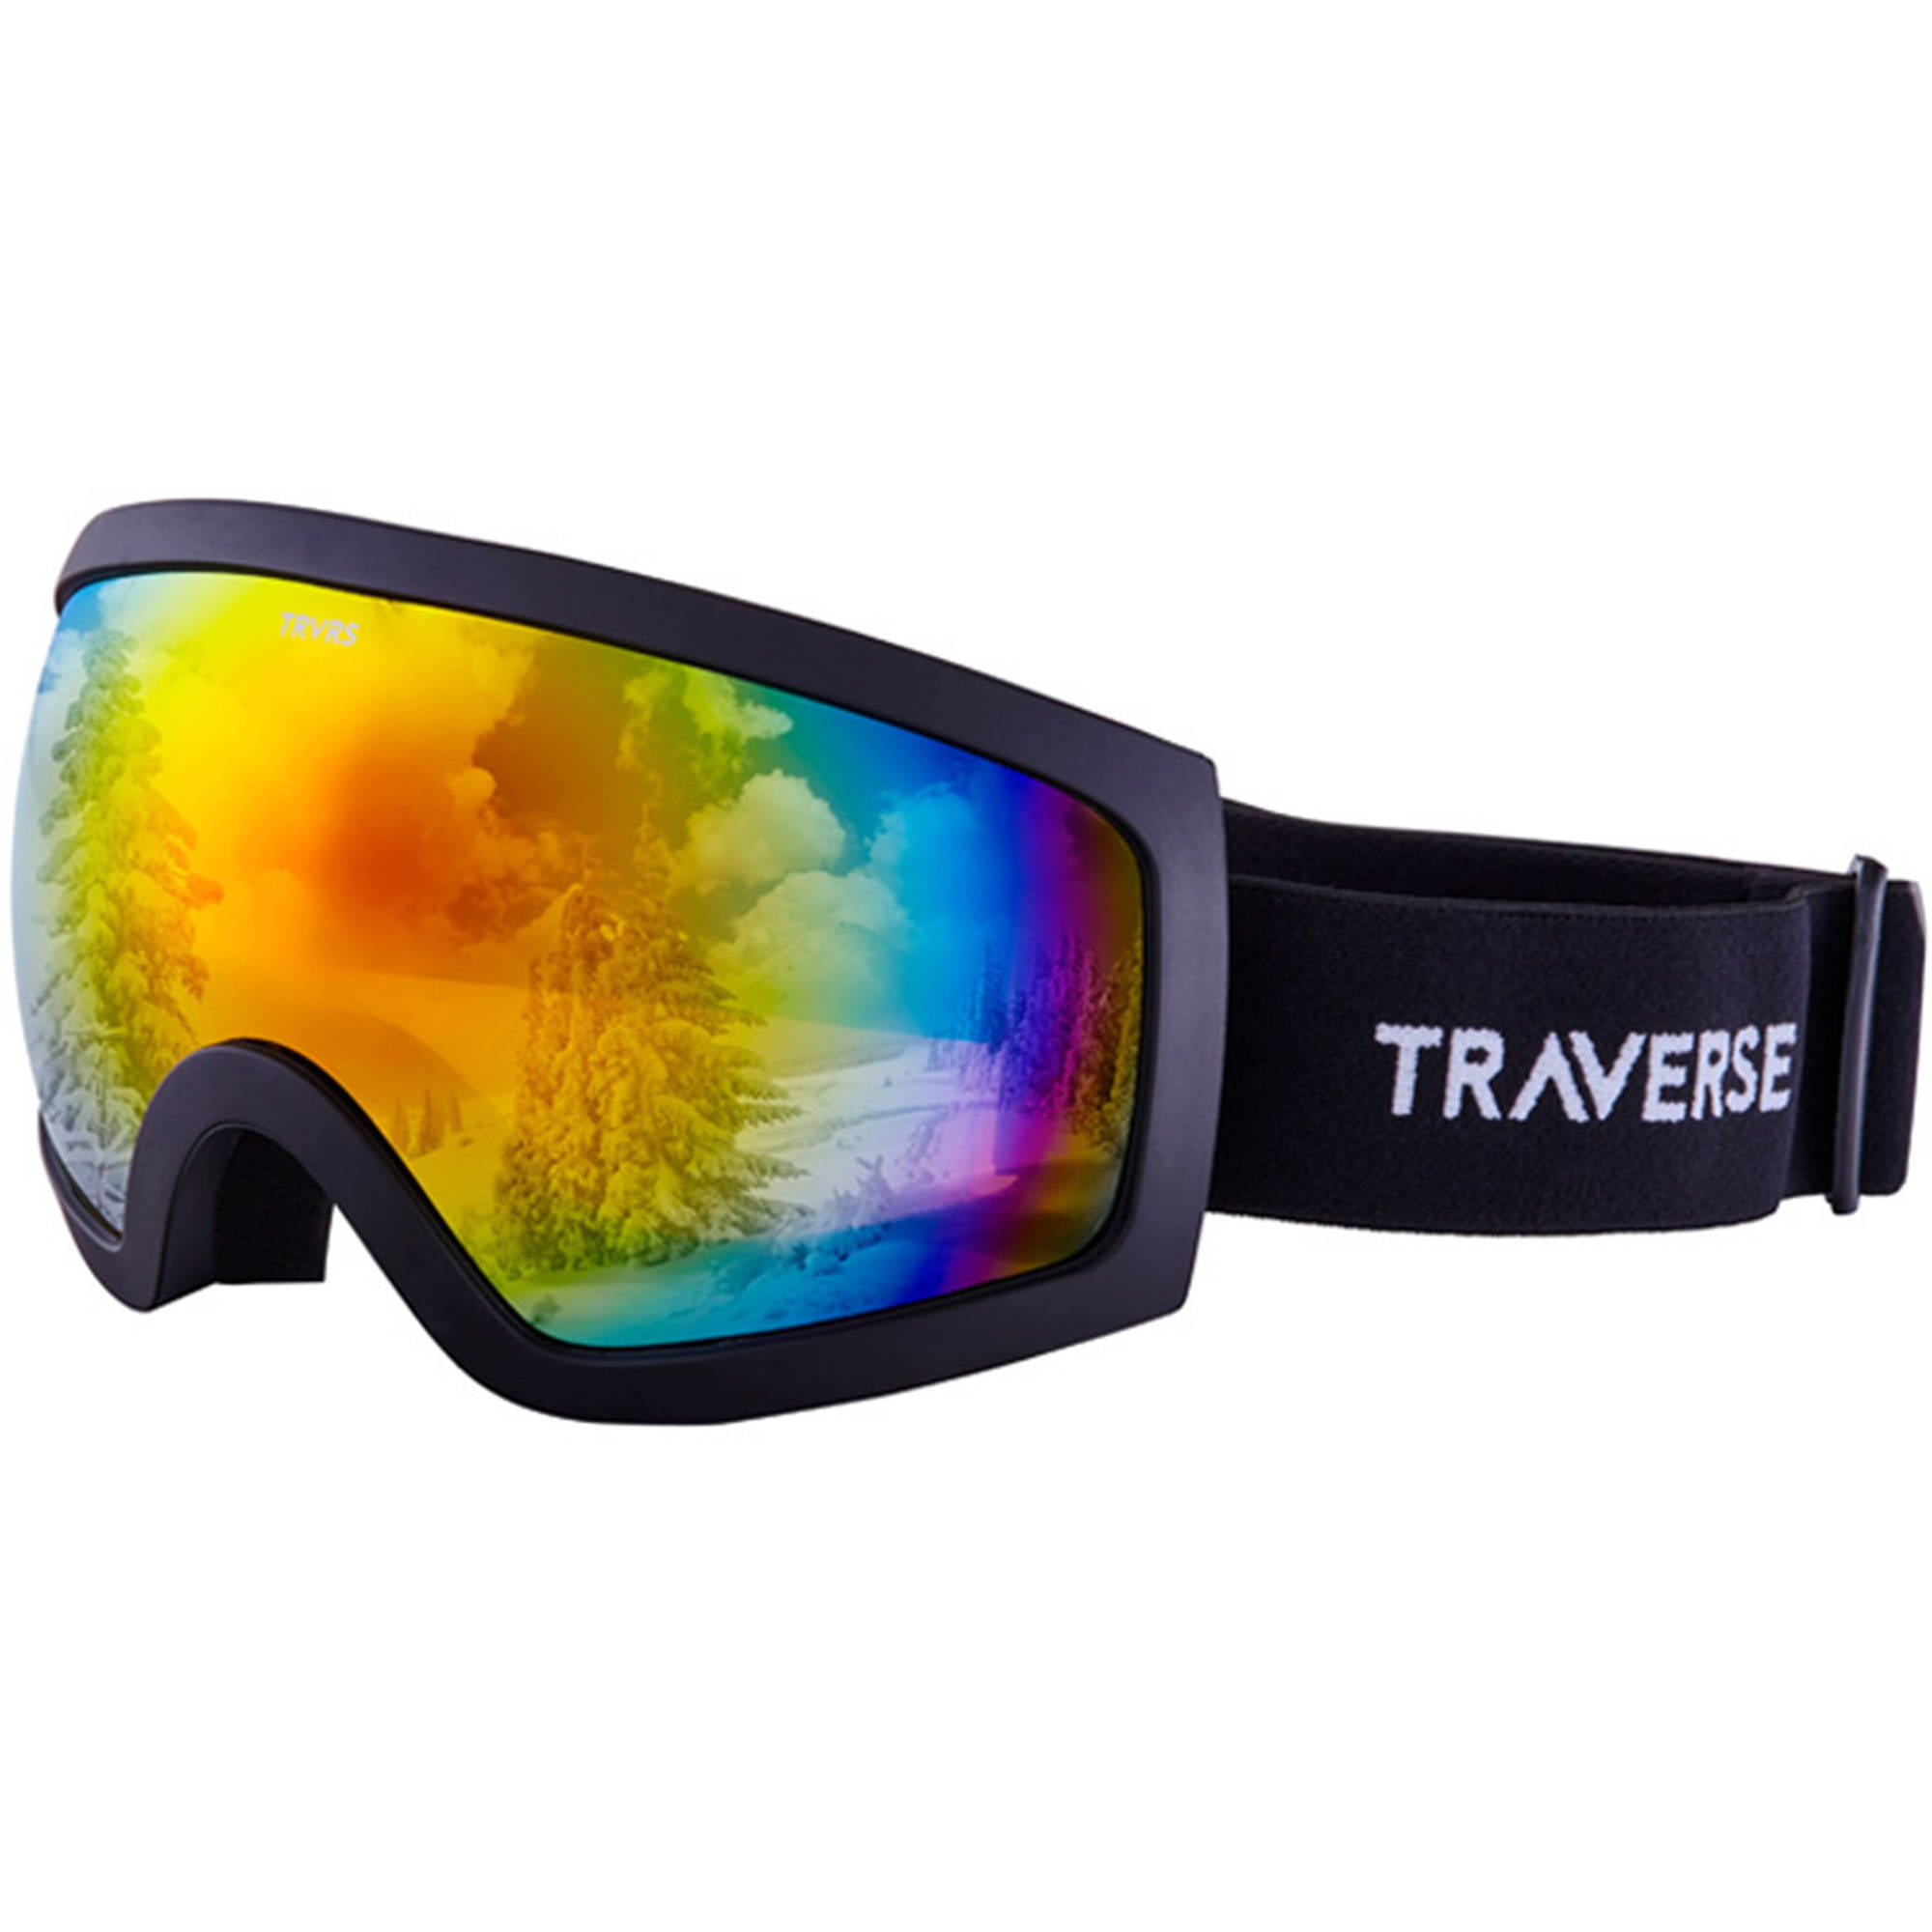 Traverse Varia Ski, Snowboard, and Snowmobile Goggles, Obsidian with Phoenix Lens by Traverse Sports